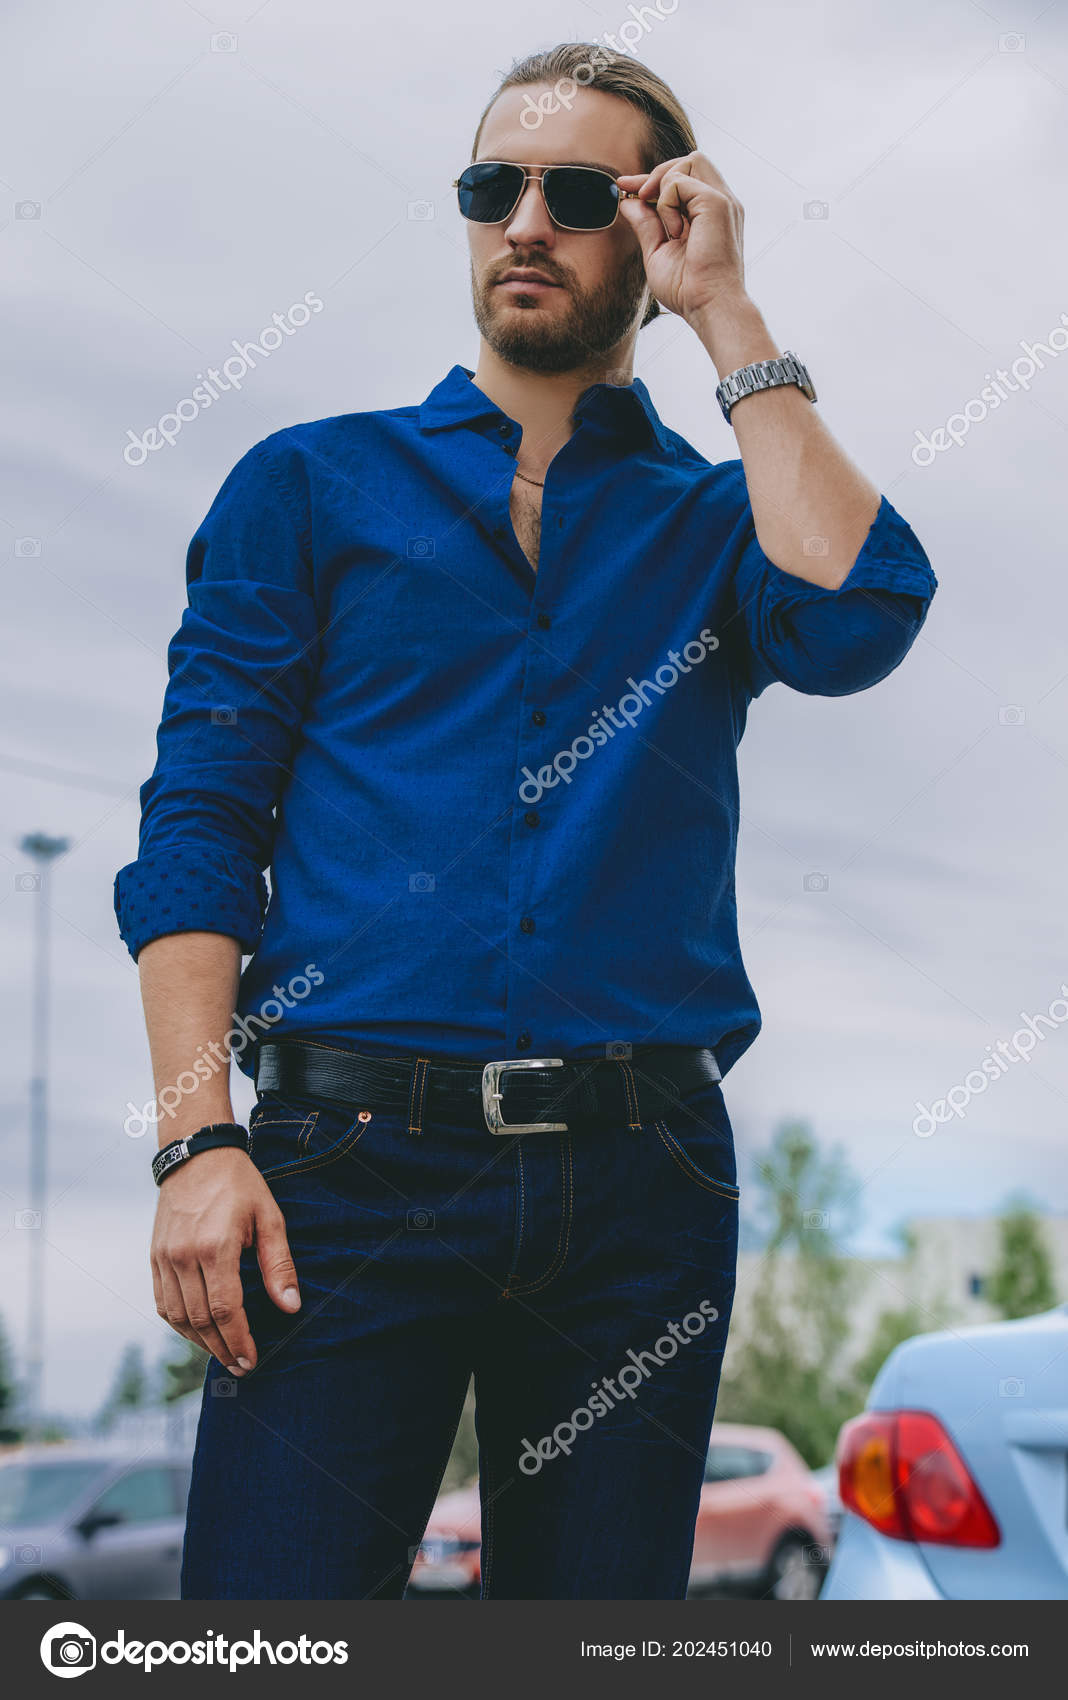 d7249174 Handsome Young Man Jeans Clothes Stands City Street Men Fashion — Stock  Photo